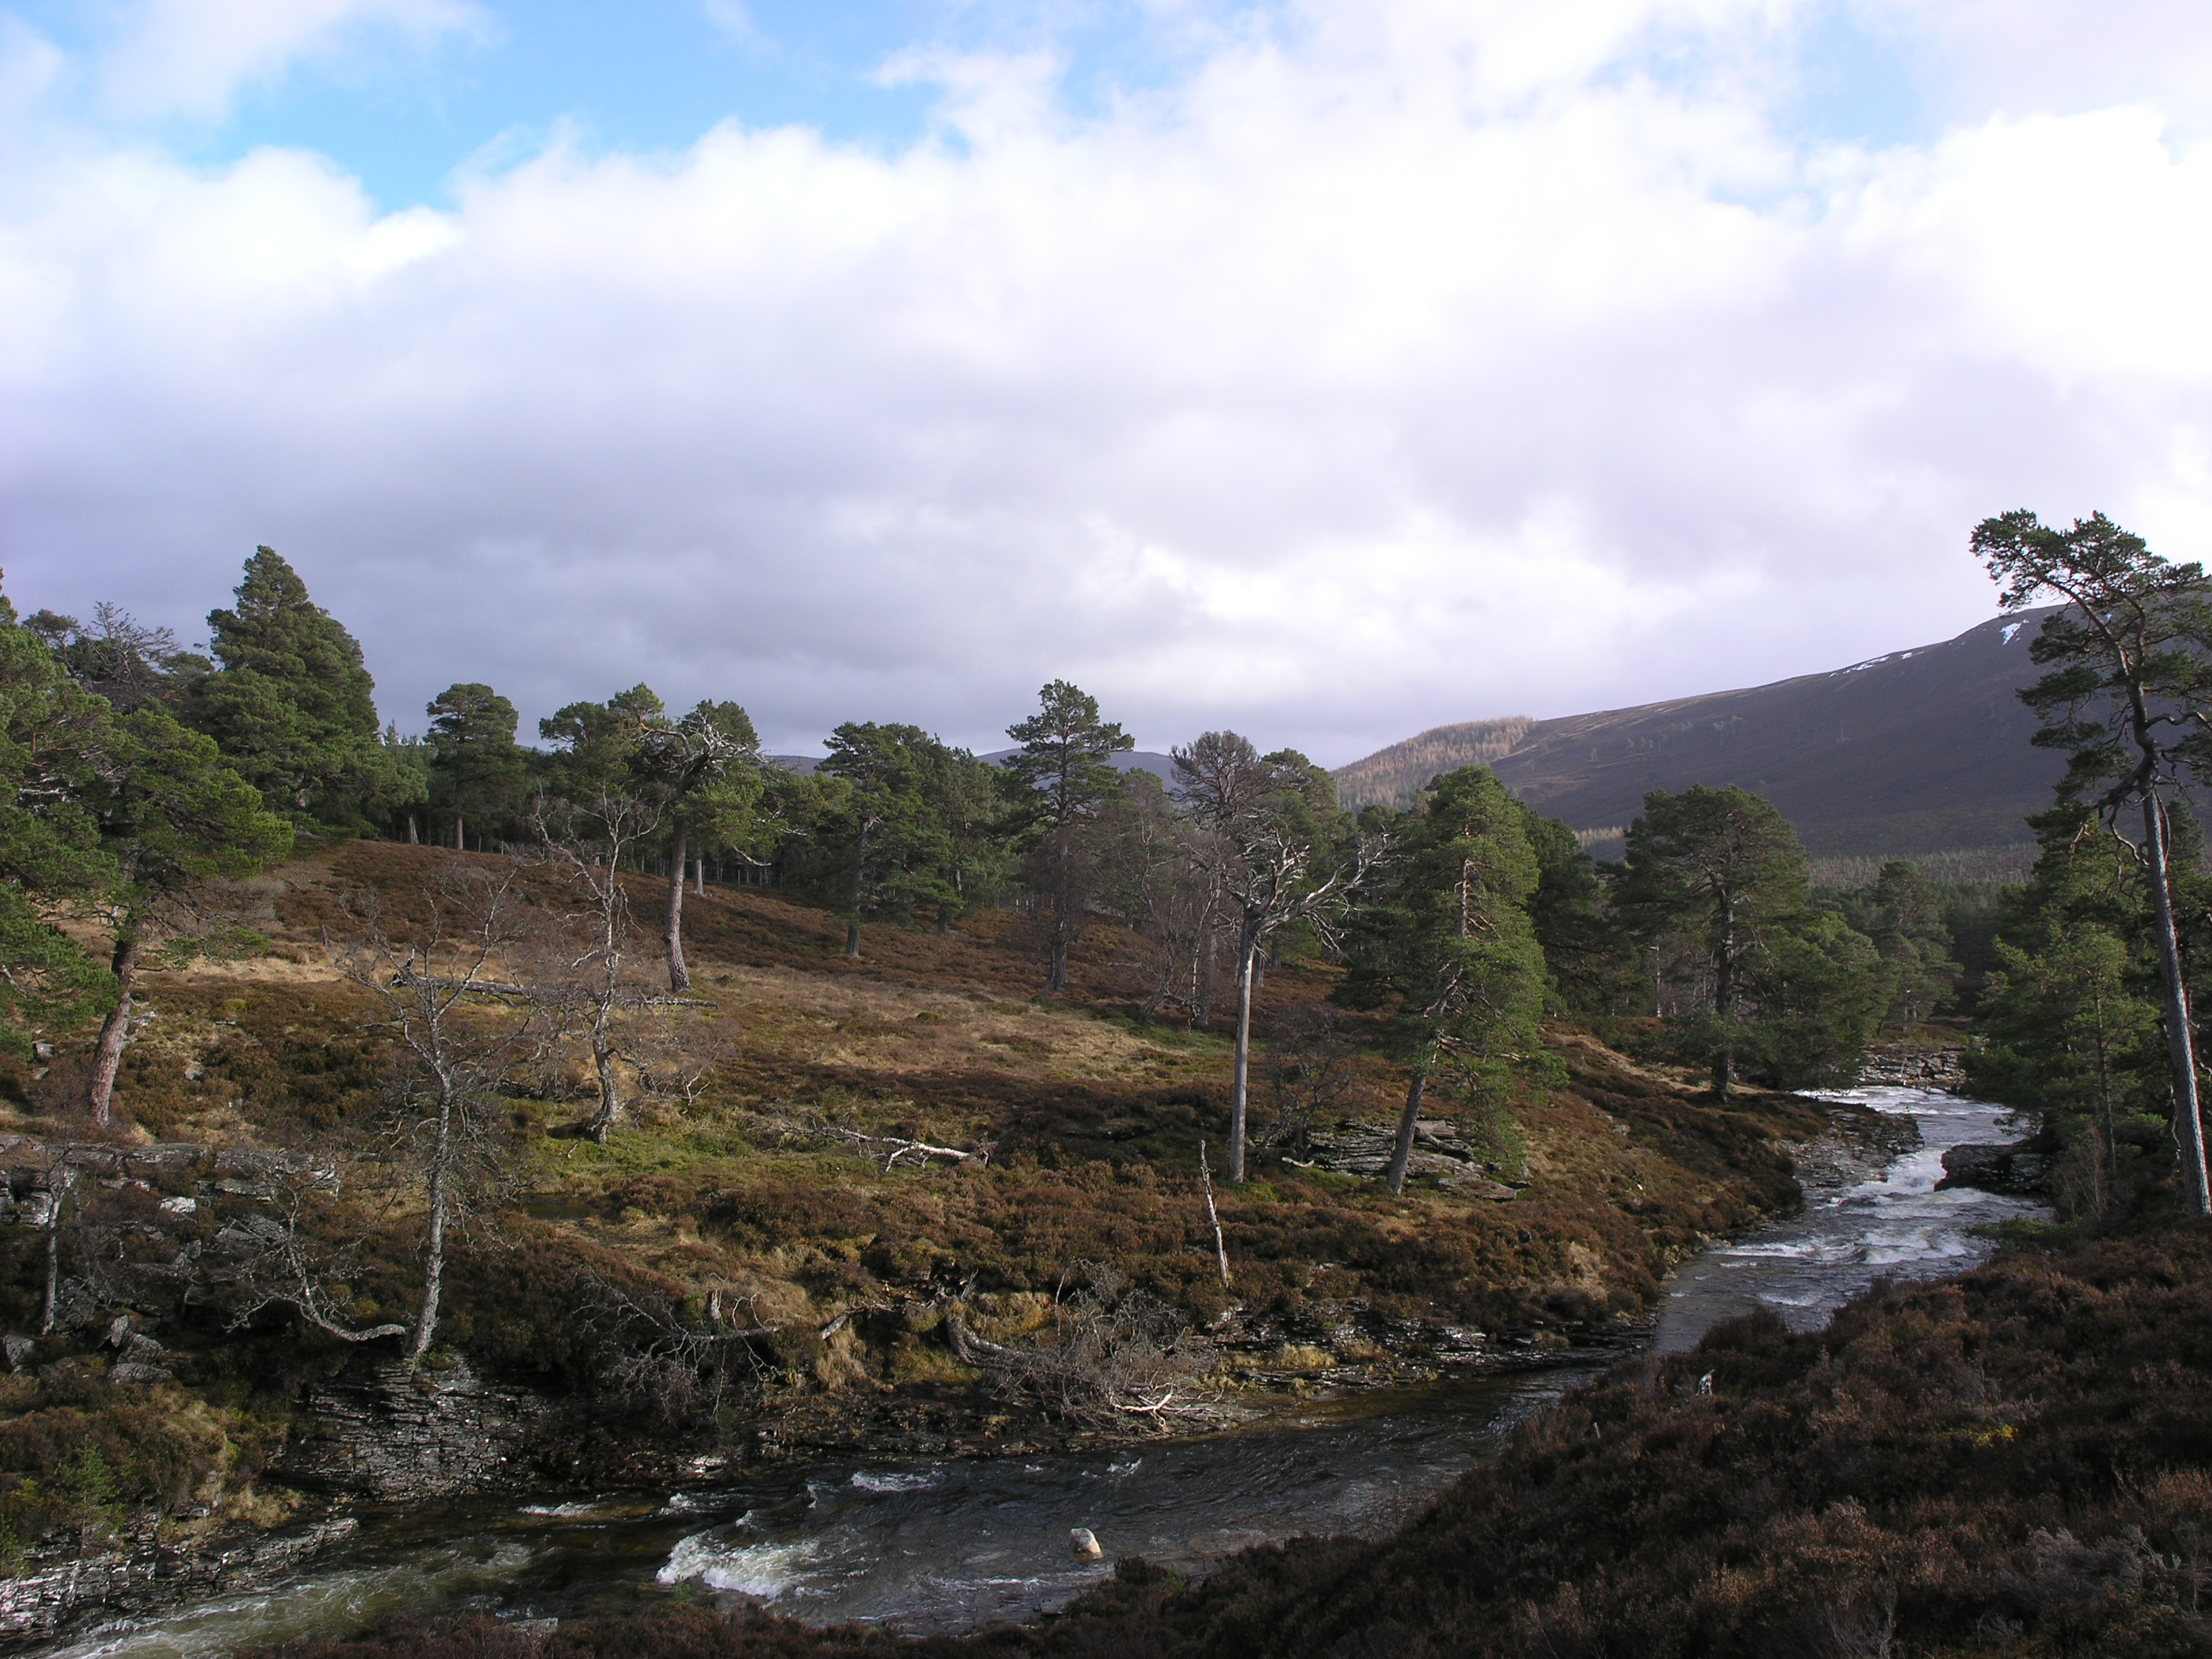 29 - Fantastic views in the Cairngorms